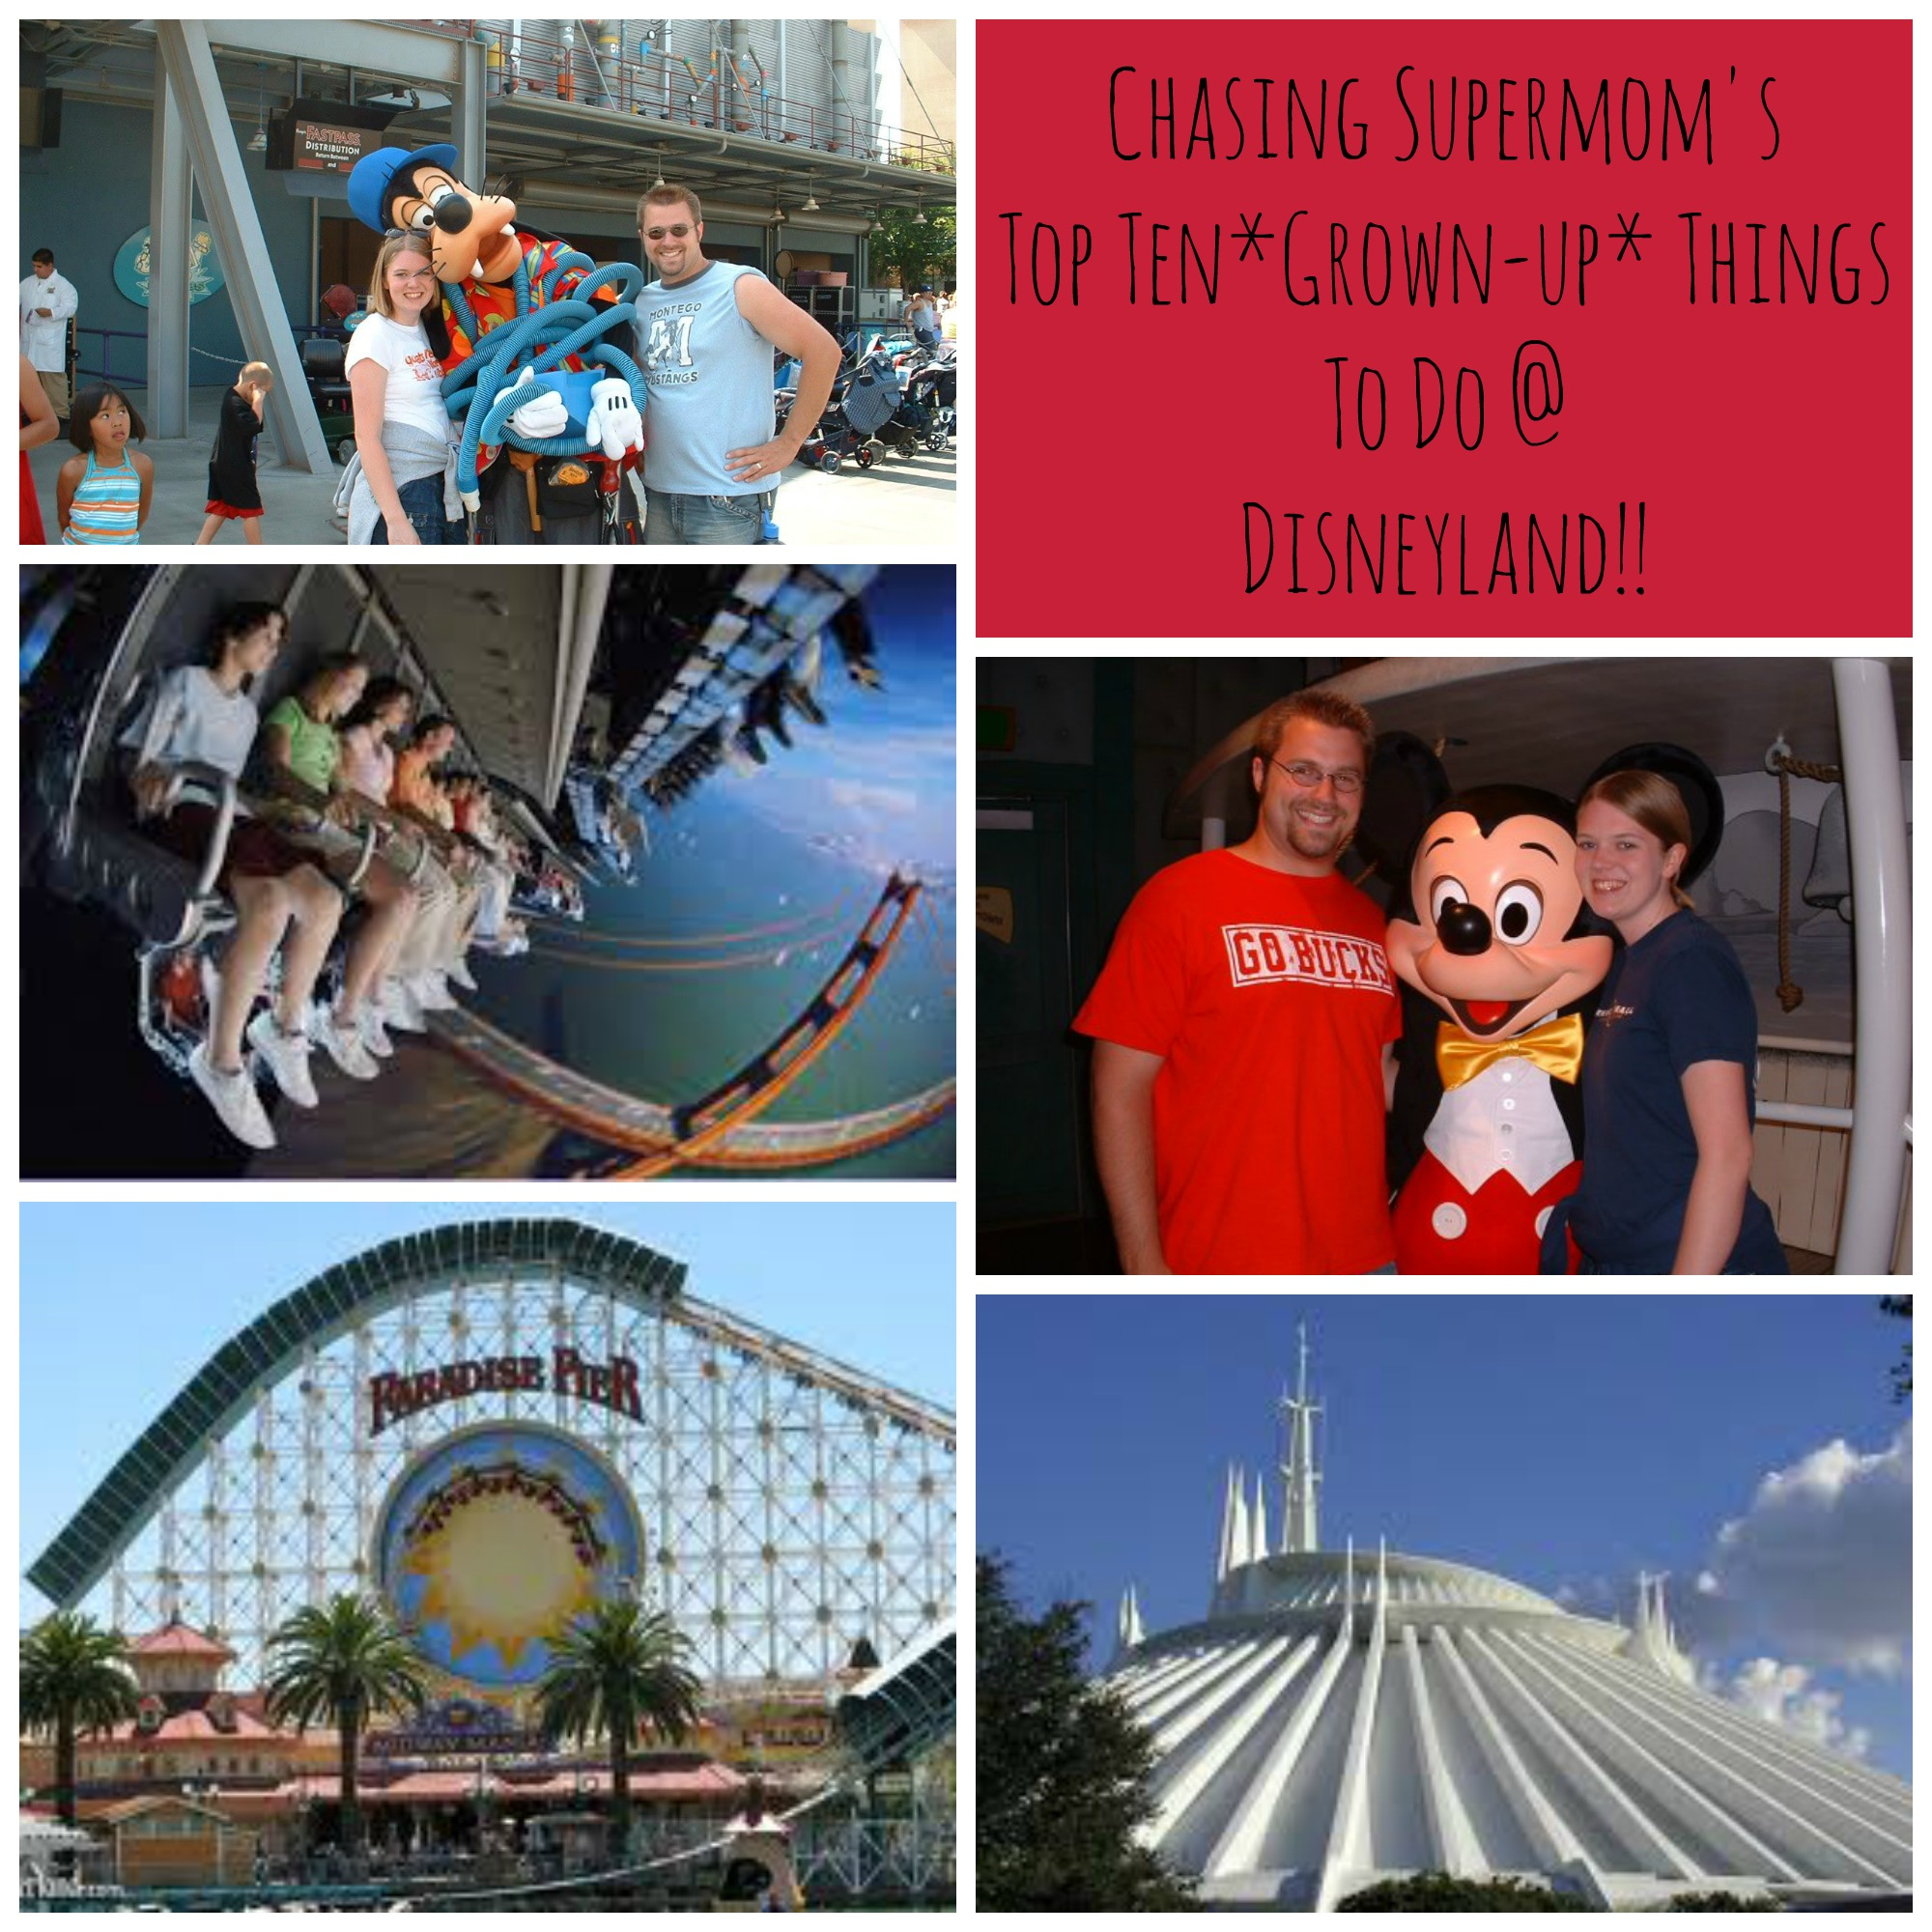 Top Ten Things for Adults to Do at Disneyland